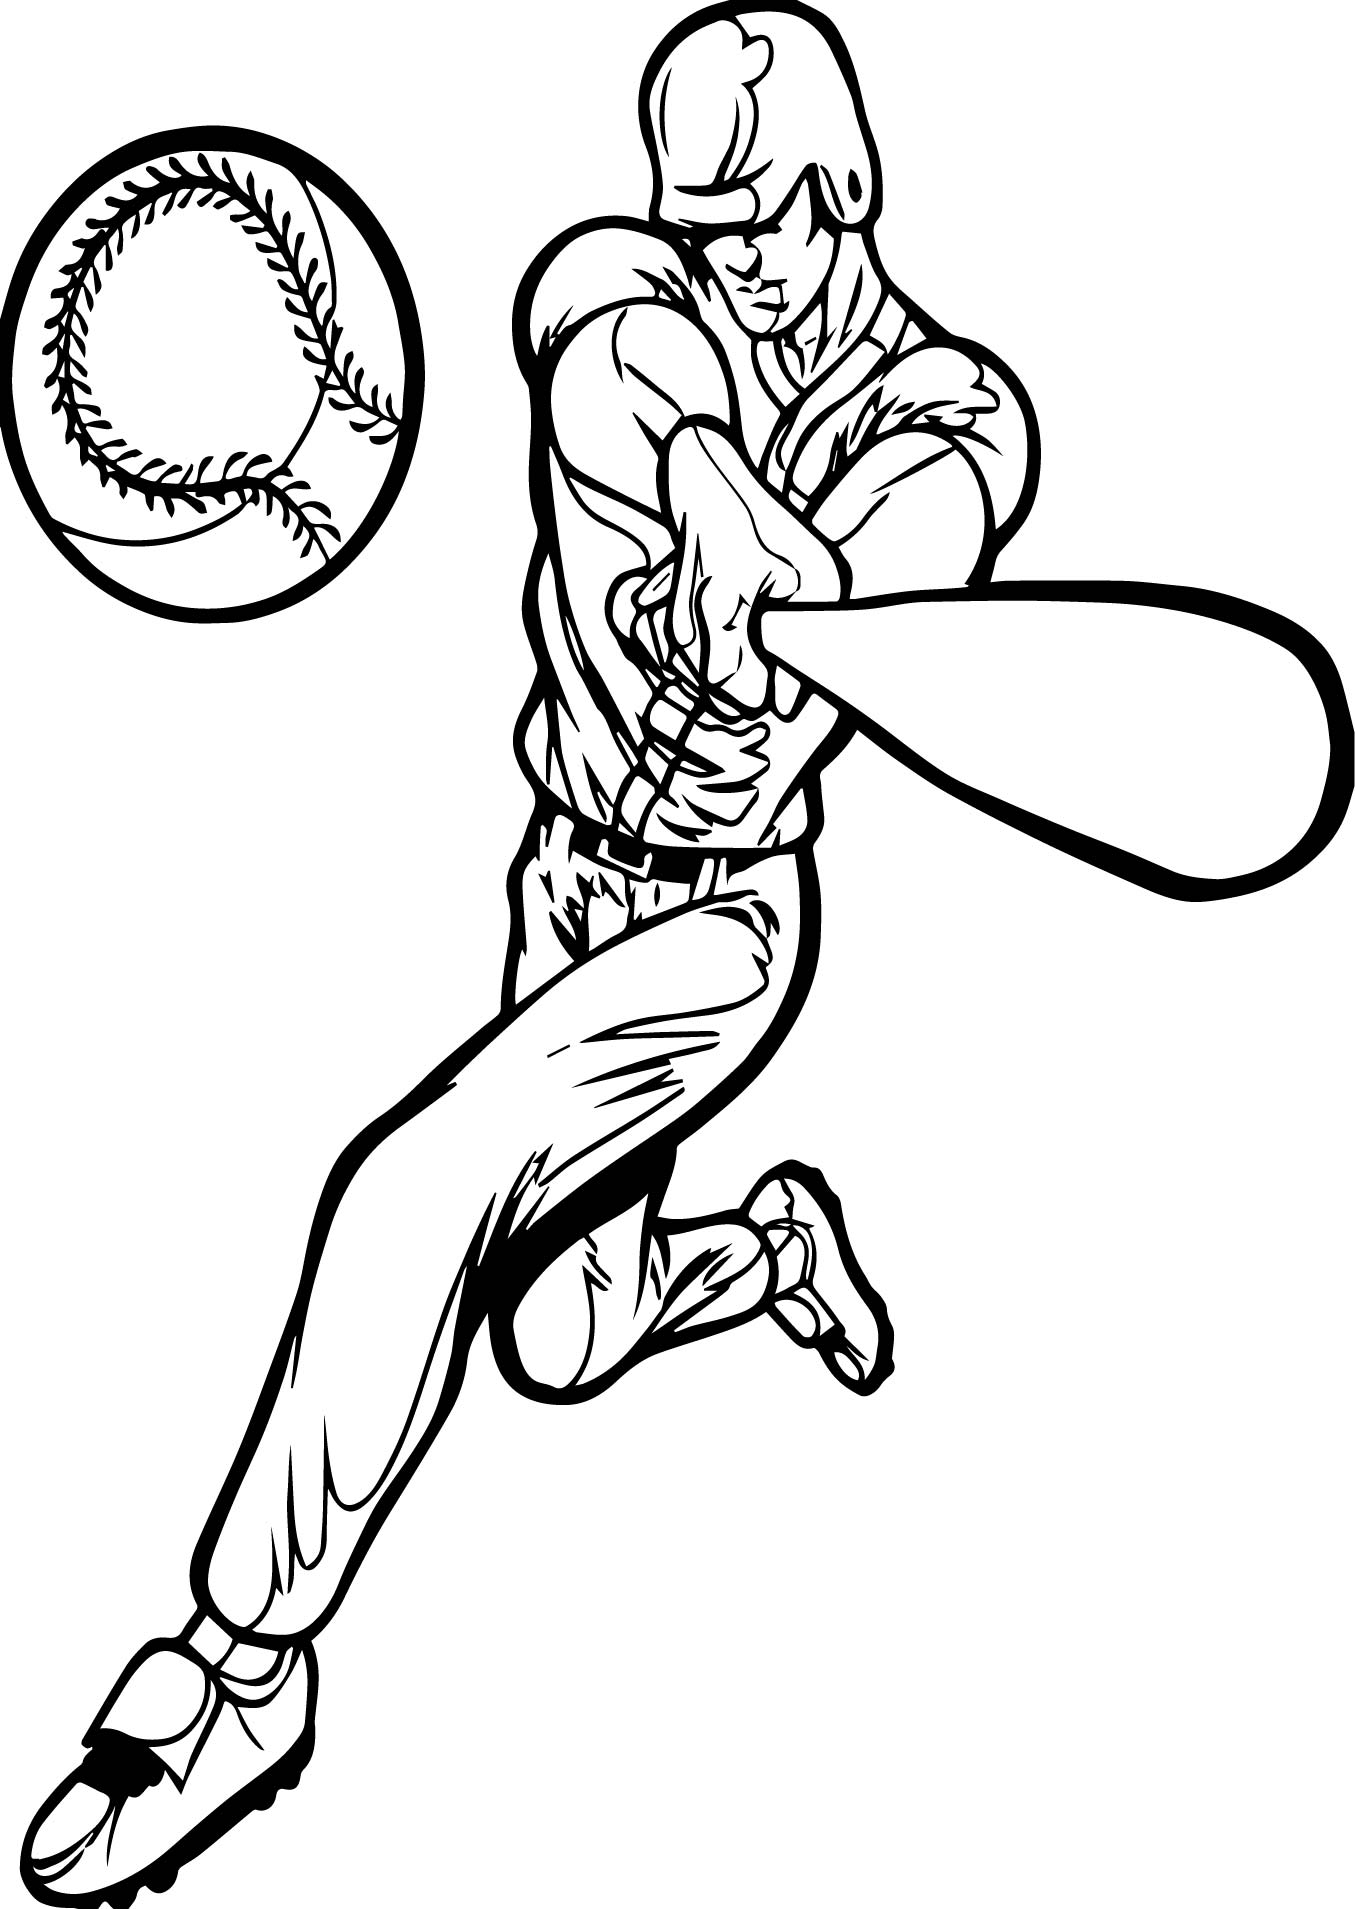 Perfect Playing Baseball Man Coloring Page